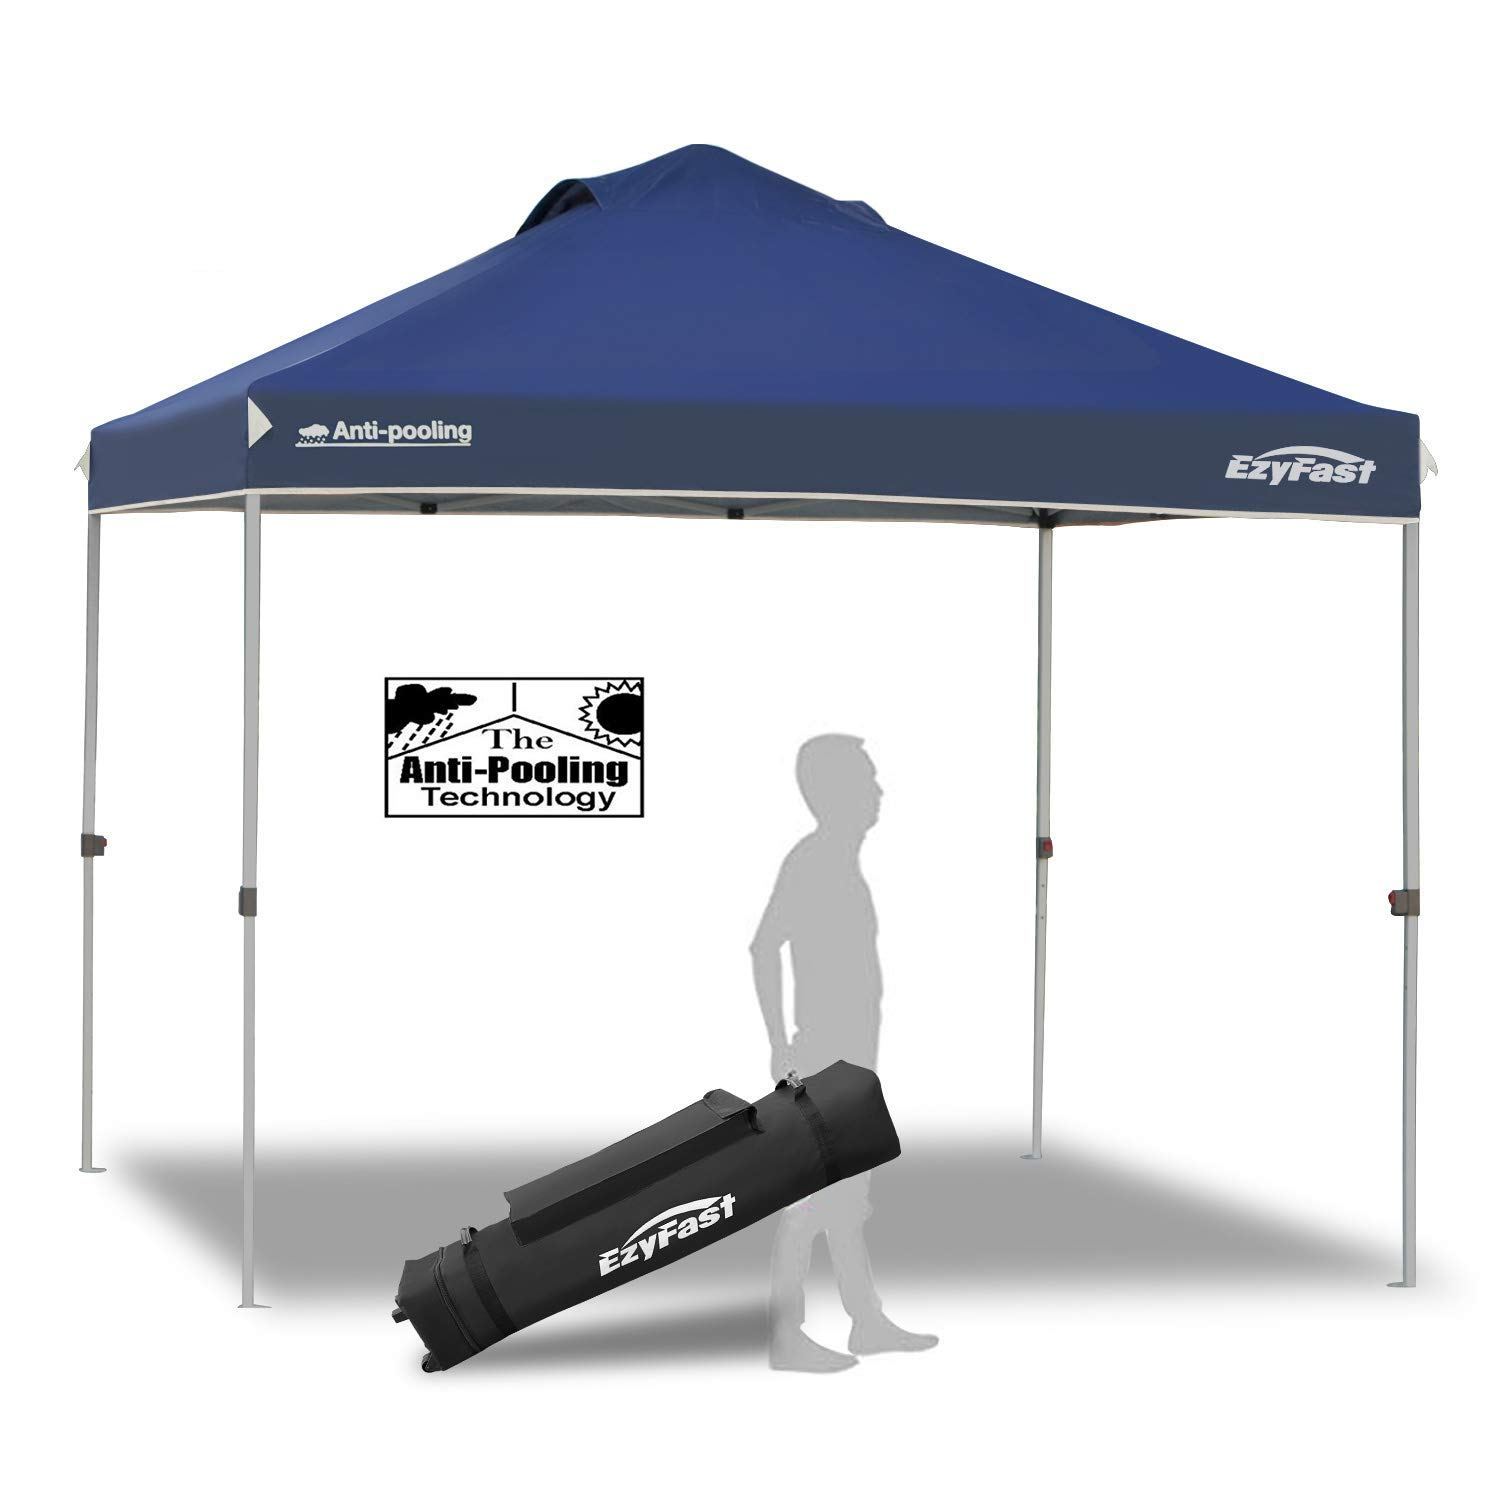 EzyFast Antipool Canopy for Rain or Sunshine best beach canopy